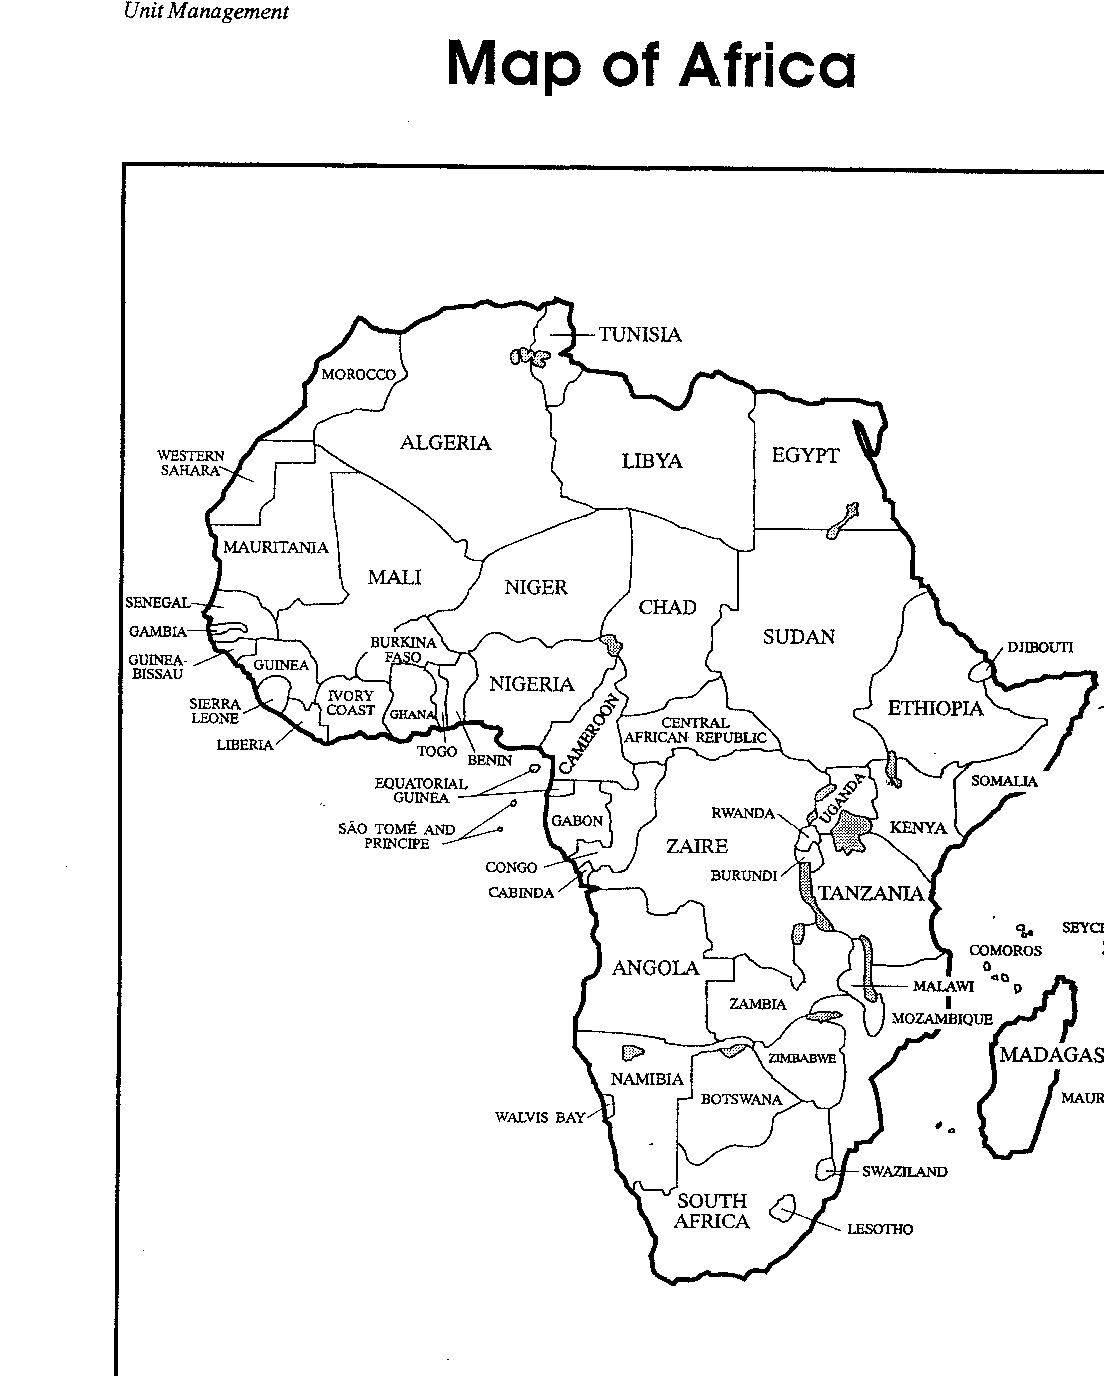 africa coloring sheet african welcome group coloring page wecoloringpagecom coloring africa sheet